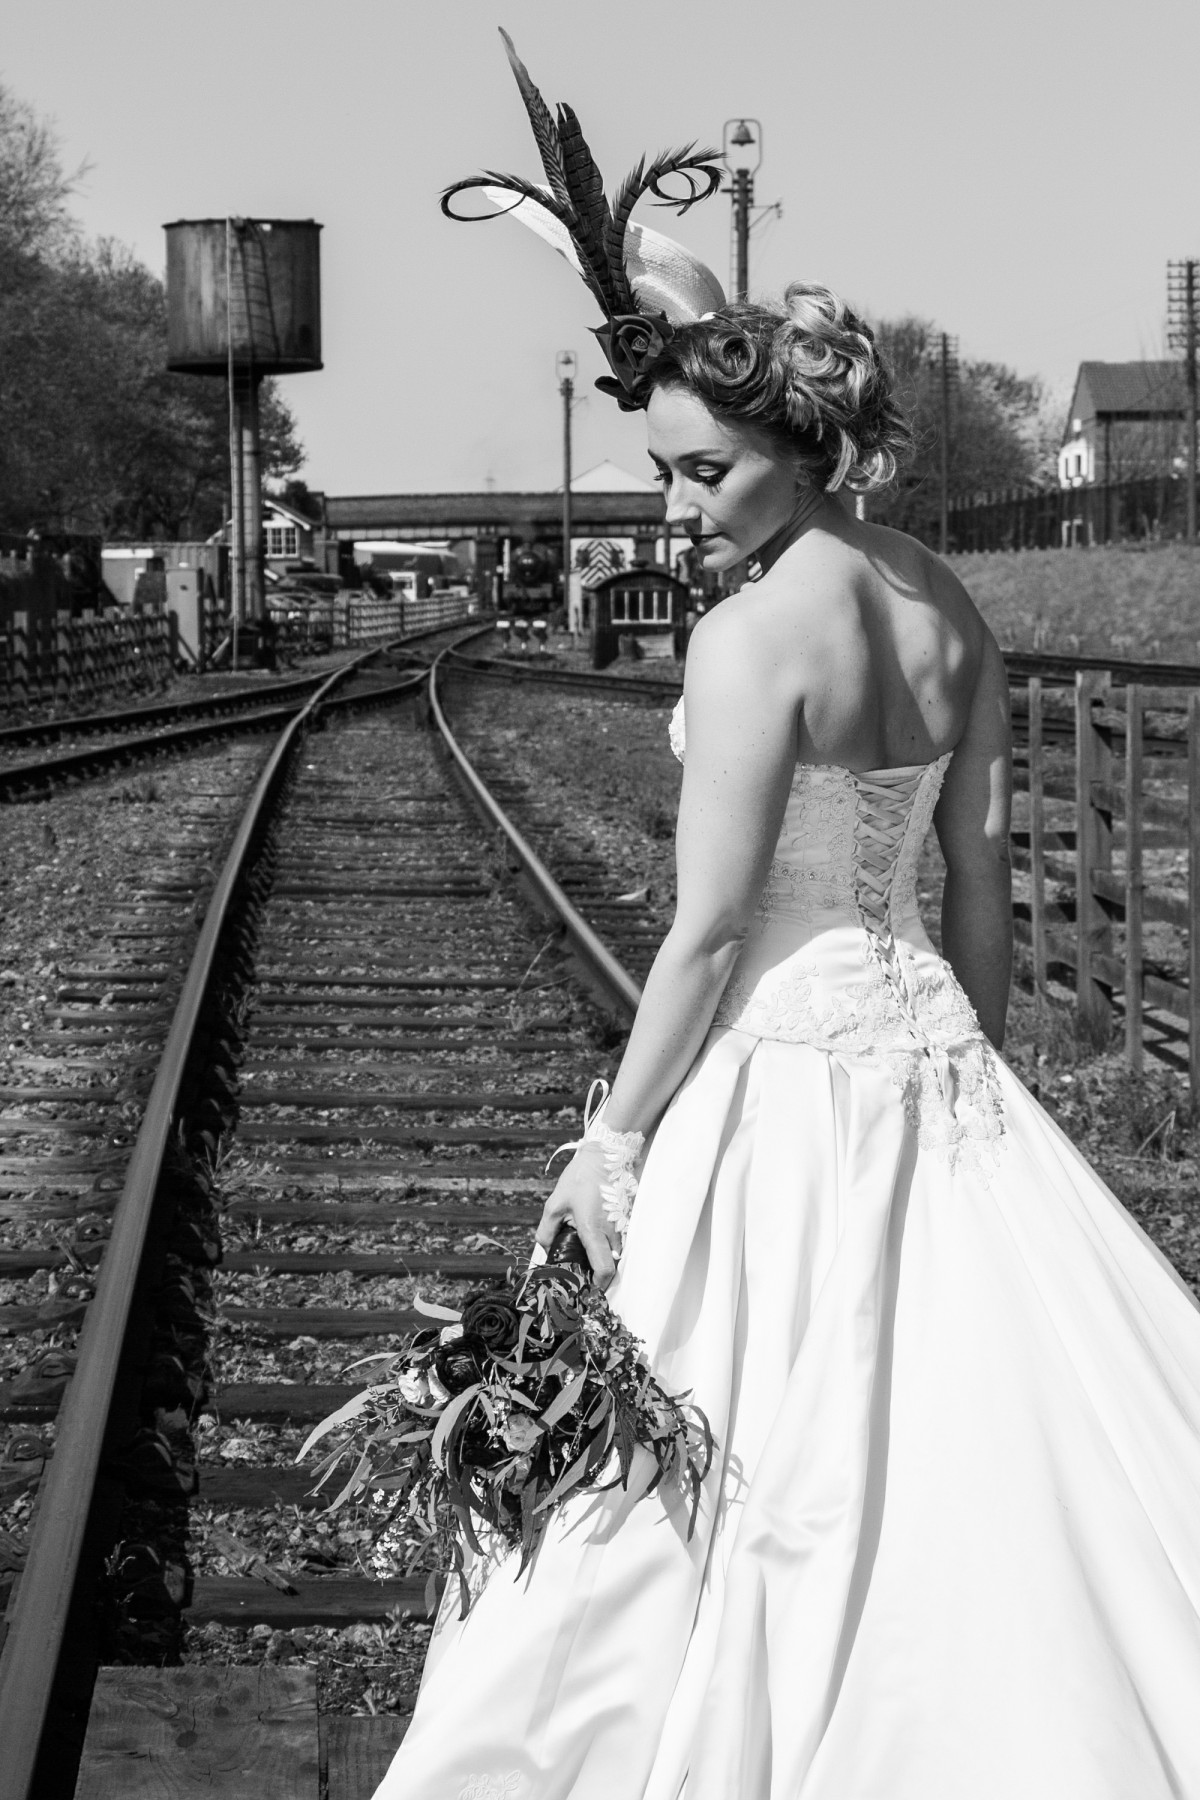 Iso Elegant Photography - Leicester wedding network - Railway wedding - vintage wedding 34